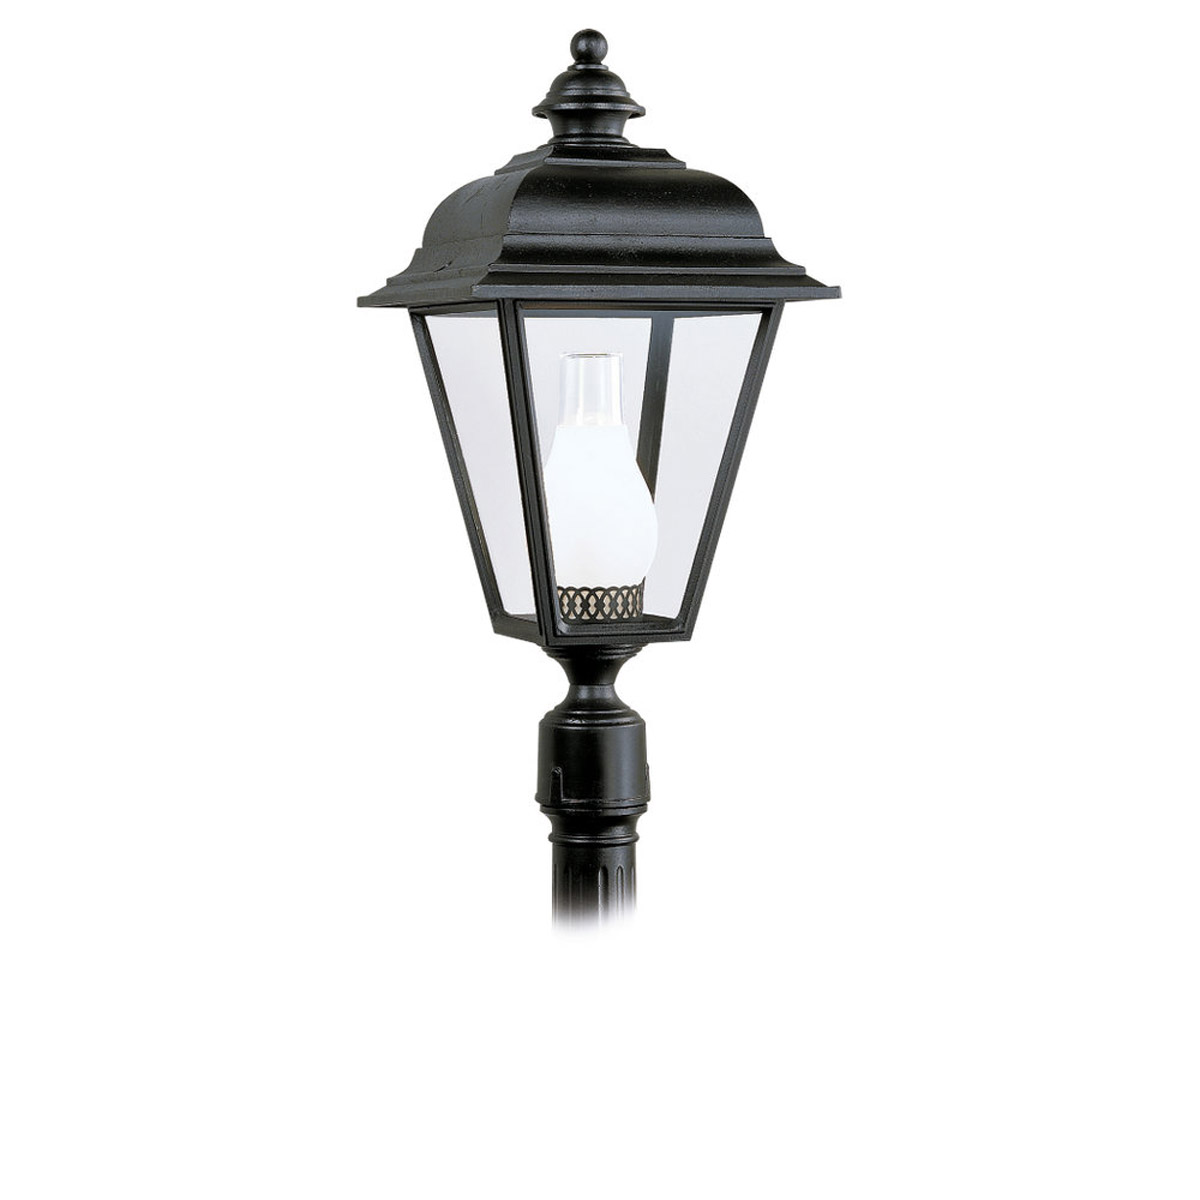 Sea Gull Lighting Bancroft 1 Light Outdoor Post Lantern in Black 8216-12